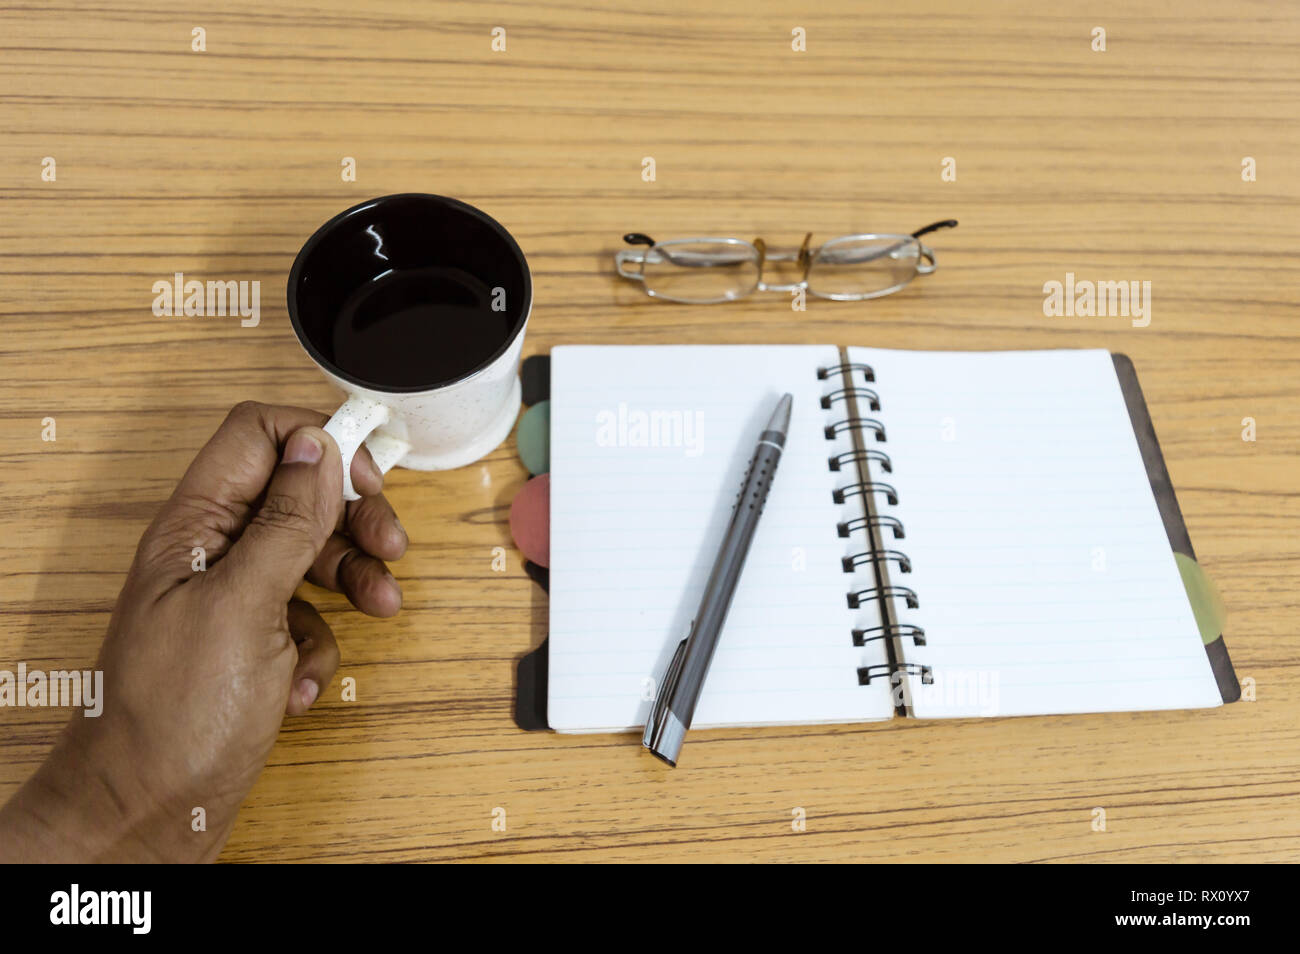 Businessman holding a cup of coffee. Business pocket planner with a eyeglass and a pen ready to note an appointment. Business still life concept with  - Stock Image